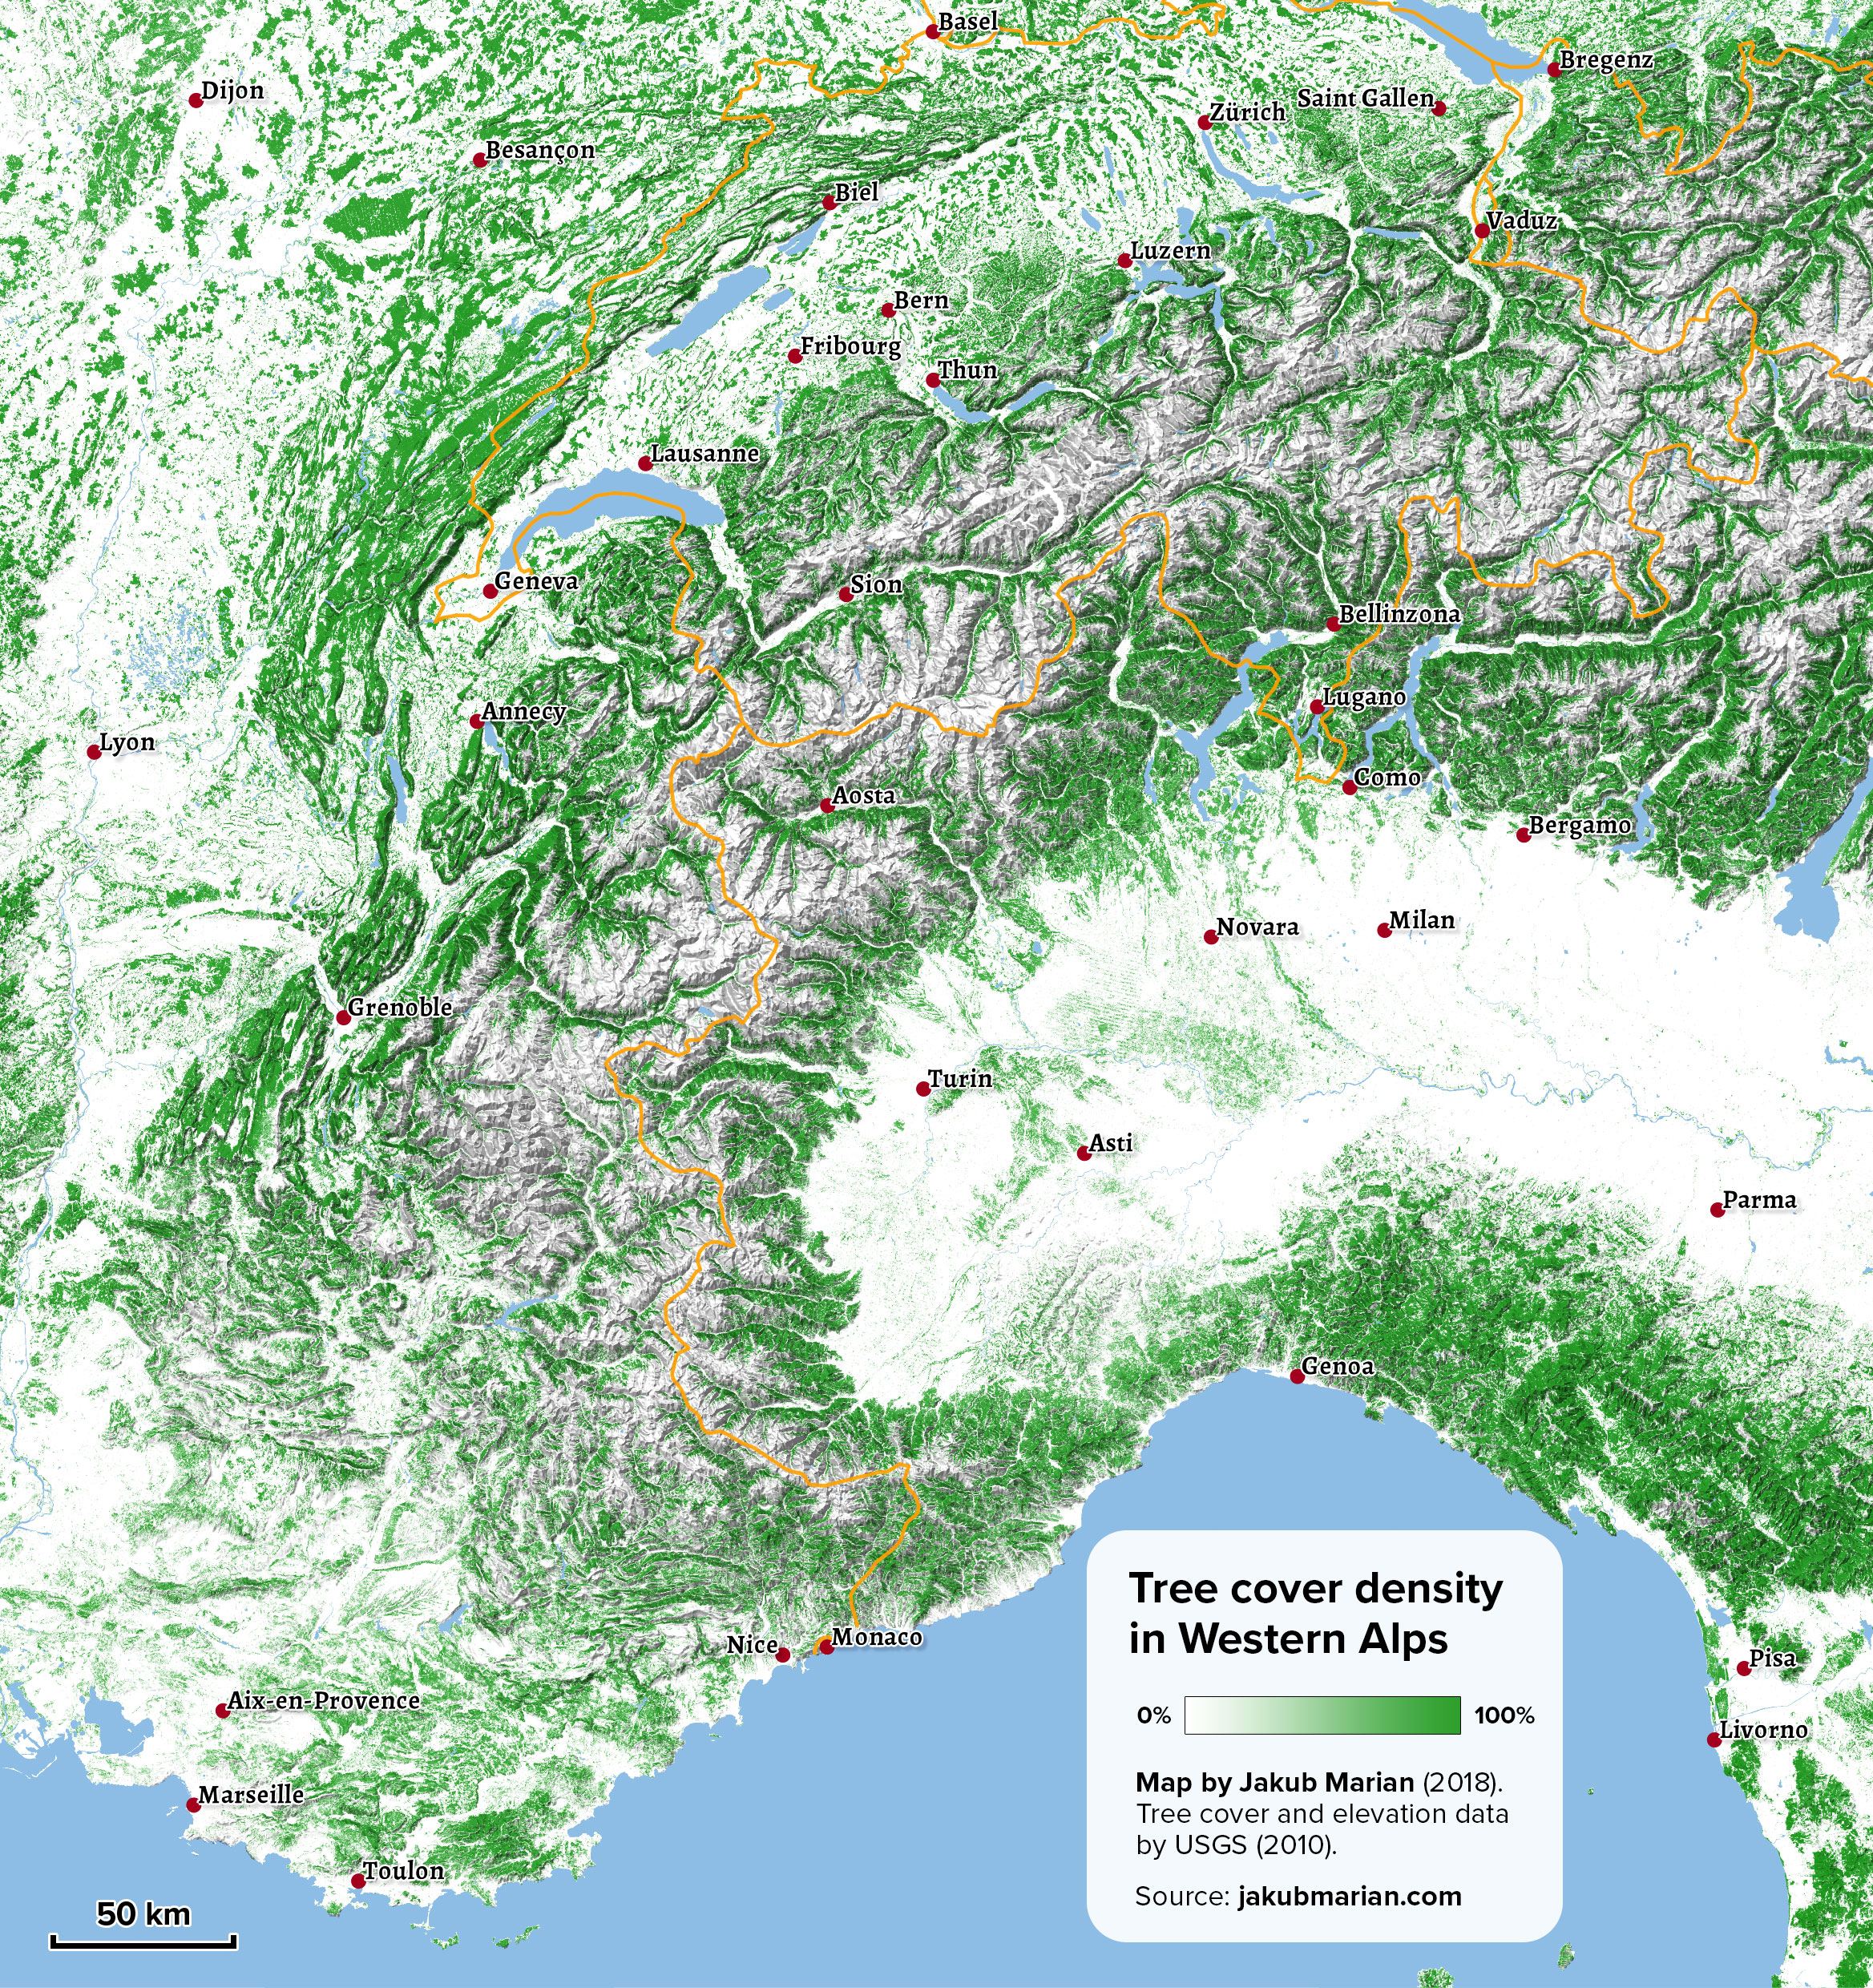 Tree cover of the Western Alps